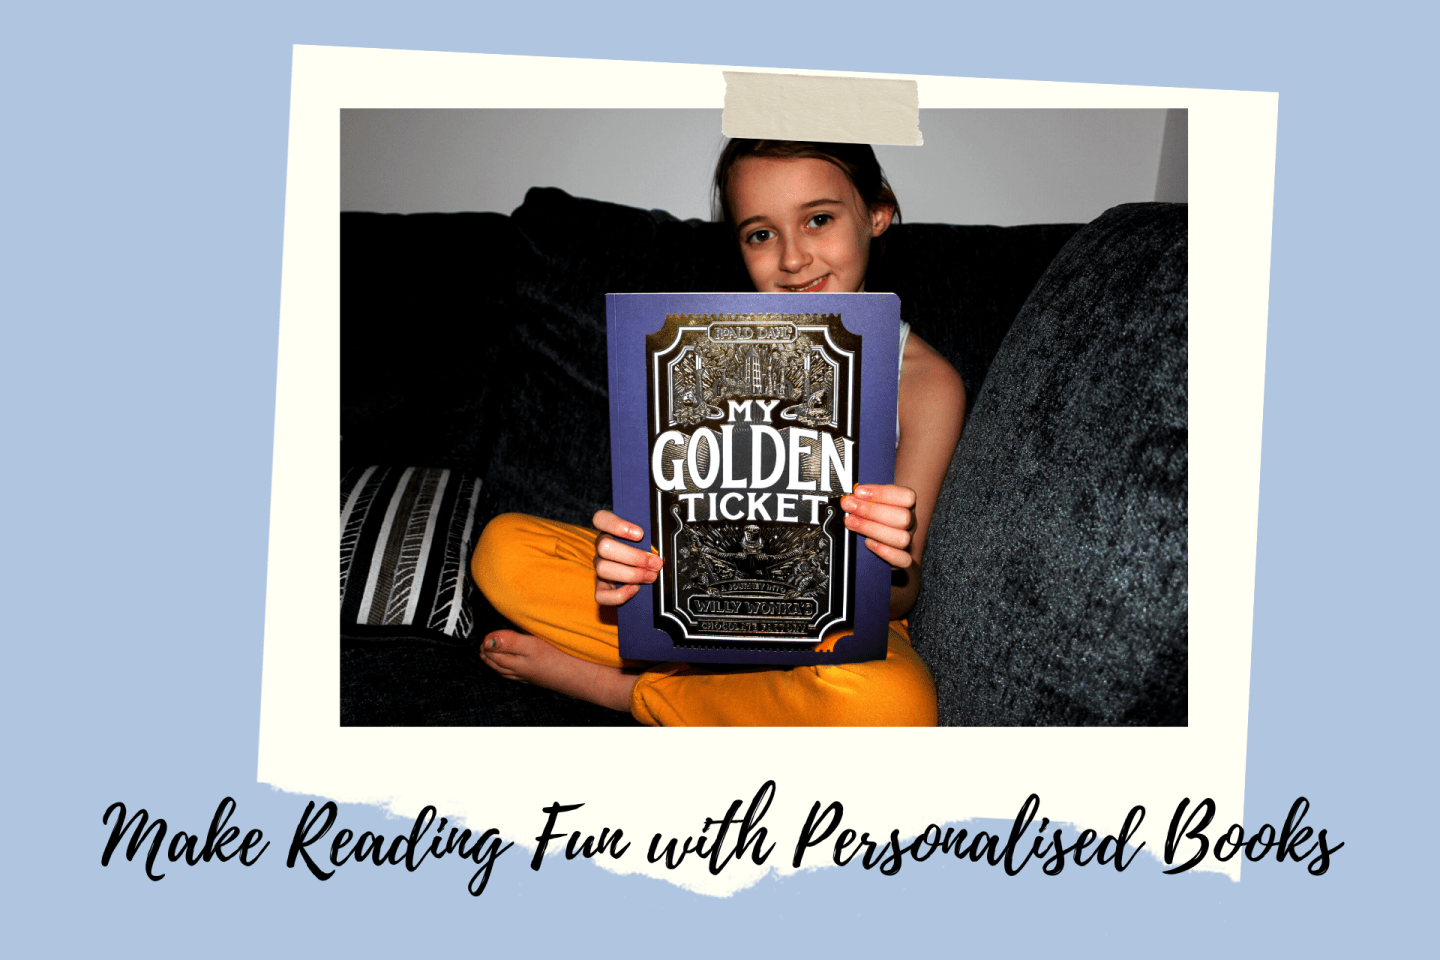 Make Reading Fun with Personalised Books